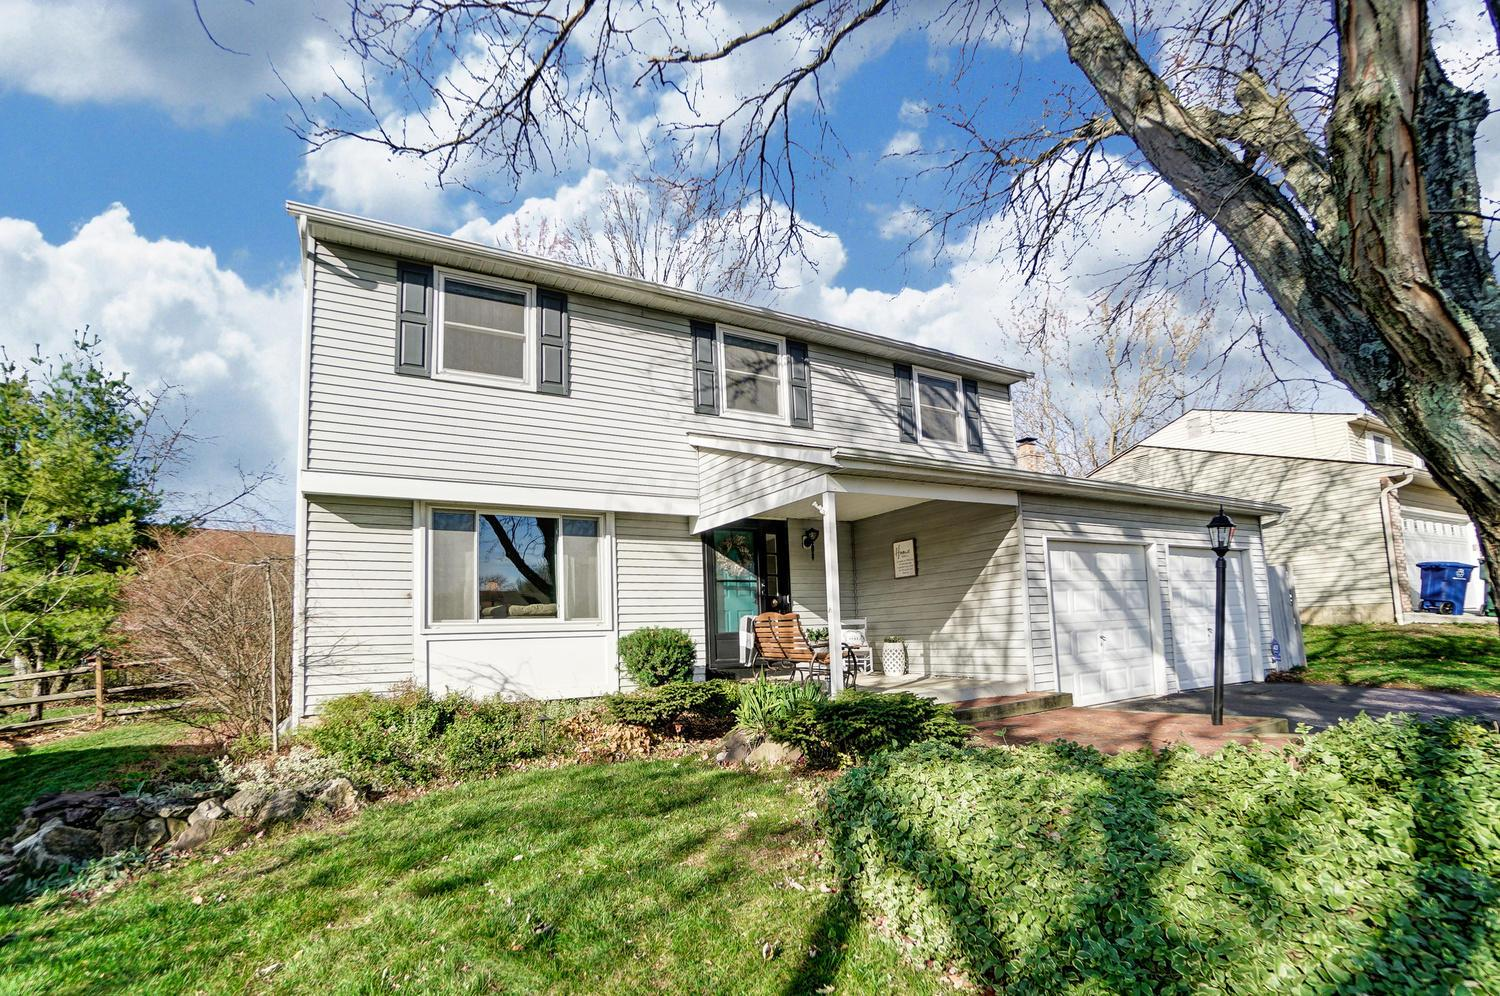 8701 Ripton Drive, Powell, Ohio 43065, 3 Bedrooms Bedrooms, ,3 BathroomsBathrooms,Residential,For Sale,Ripton,220041050